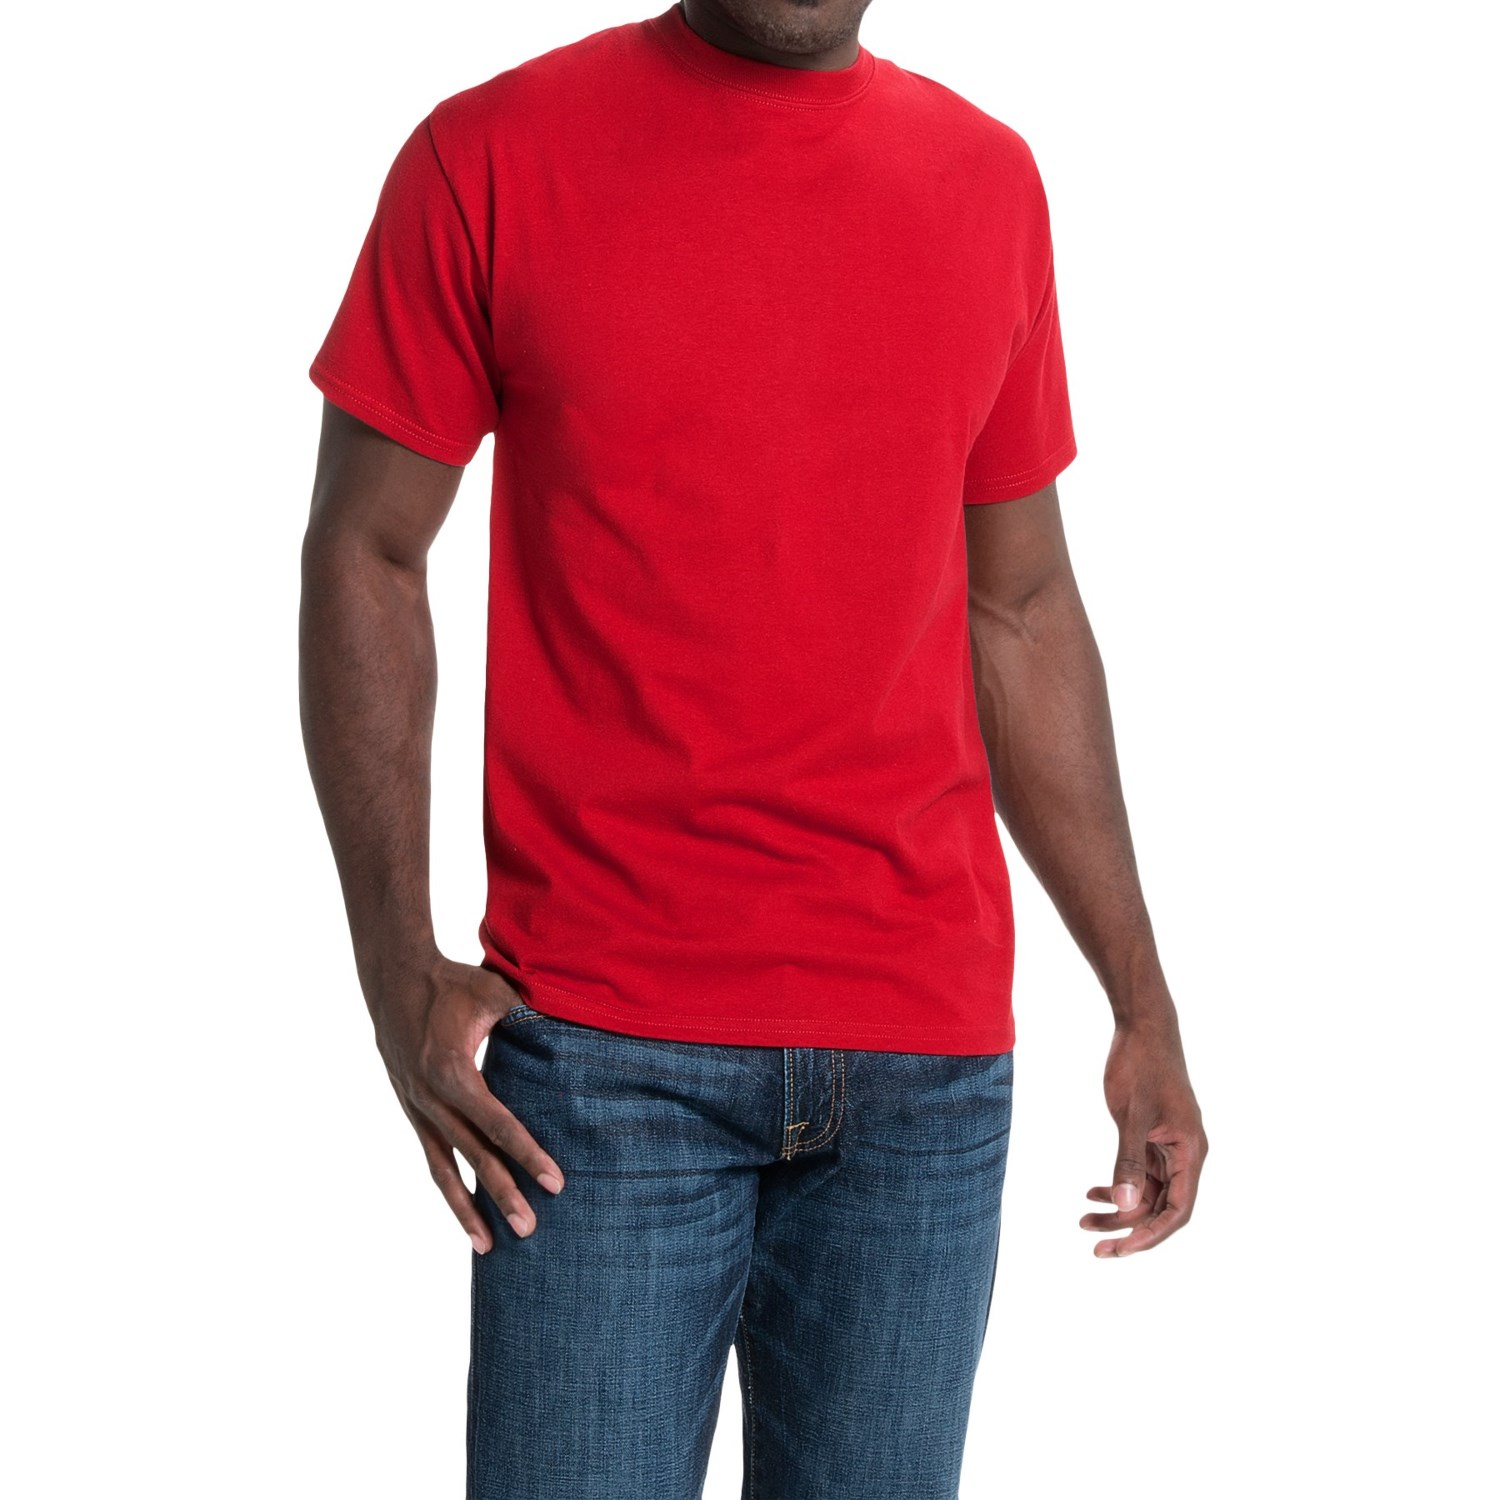 Hanes beefy t t shirt for men and women save 72 for Hanes beefy t custom shirts